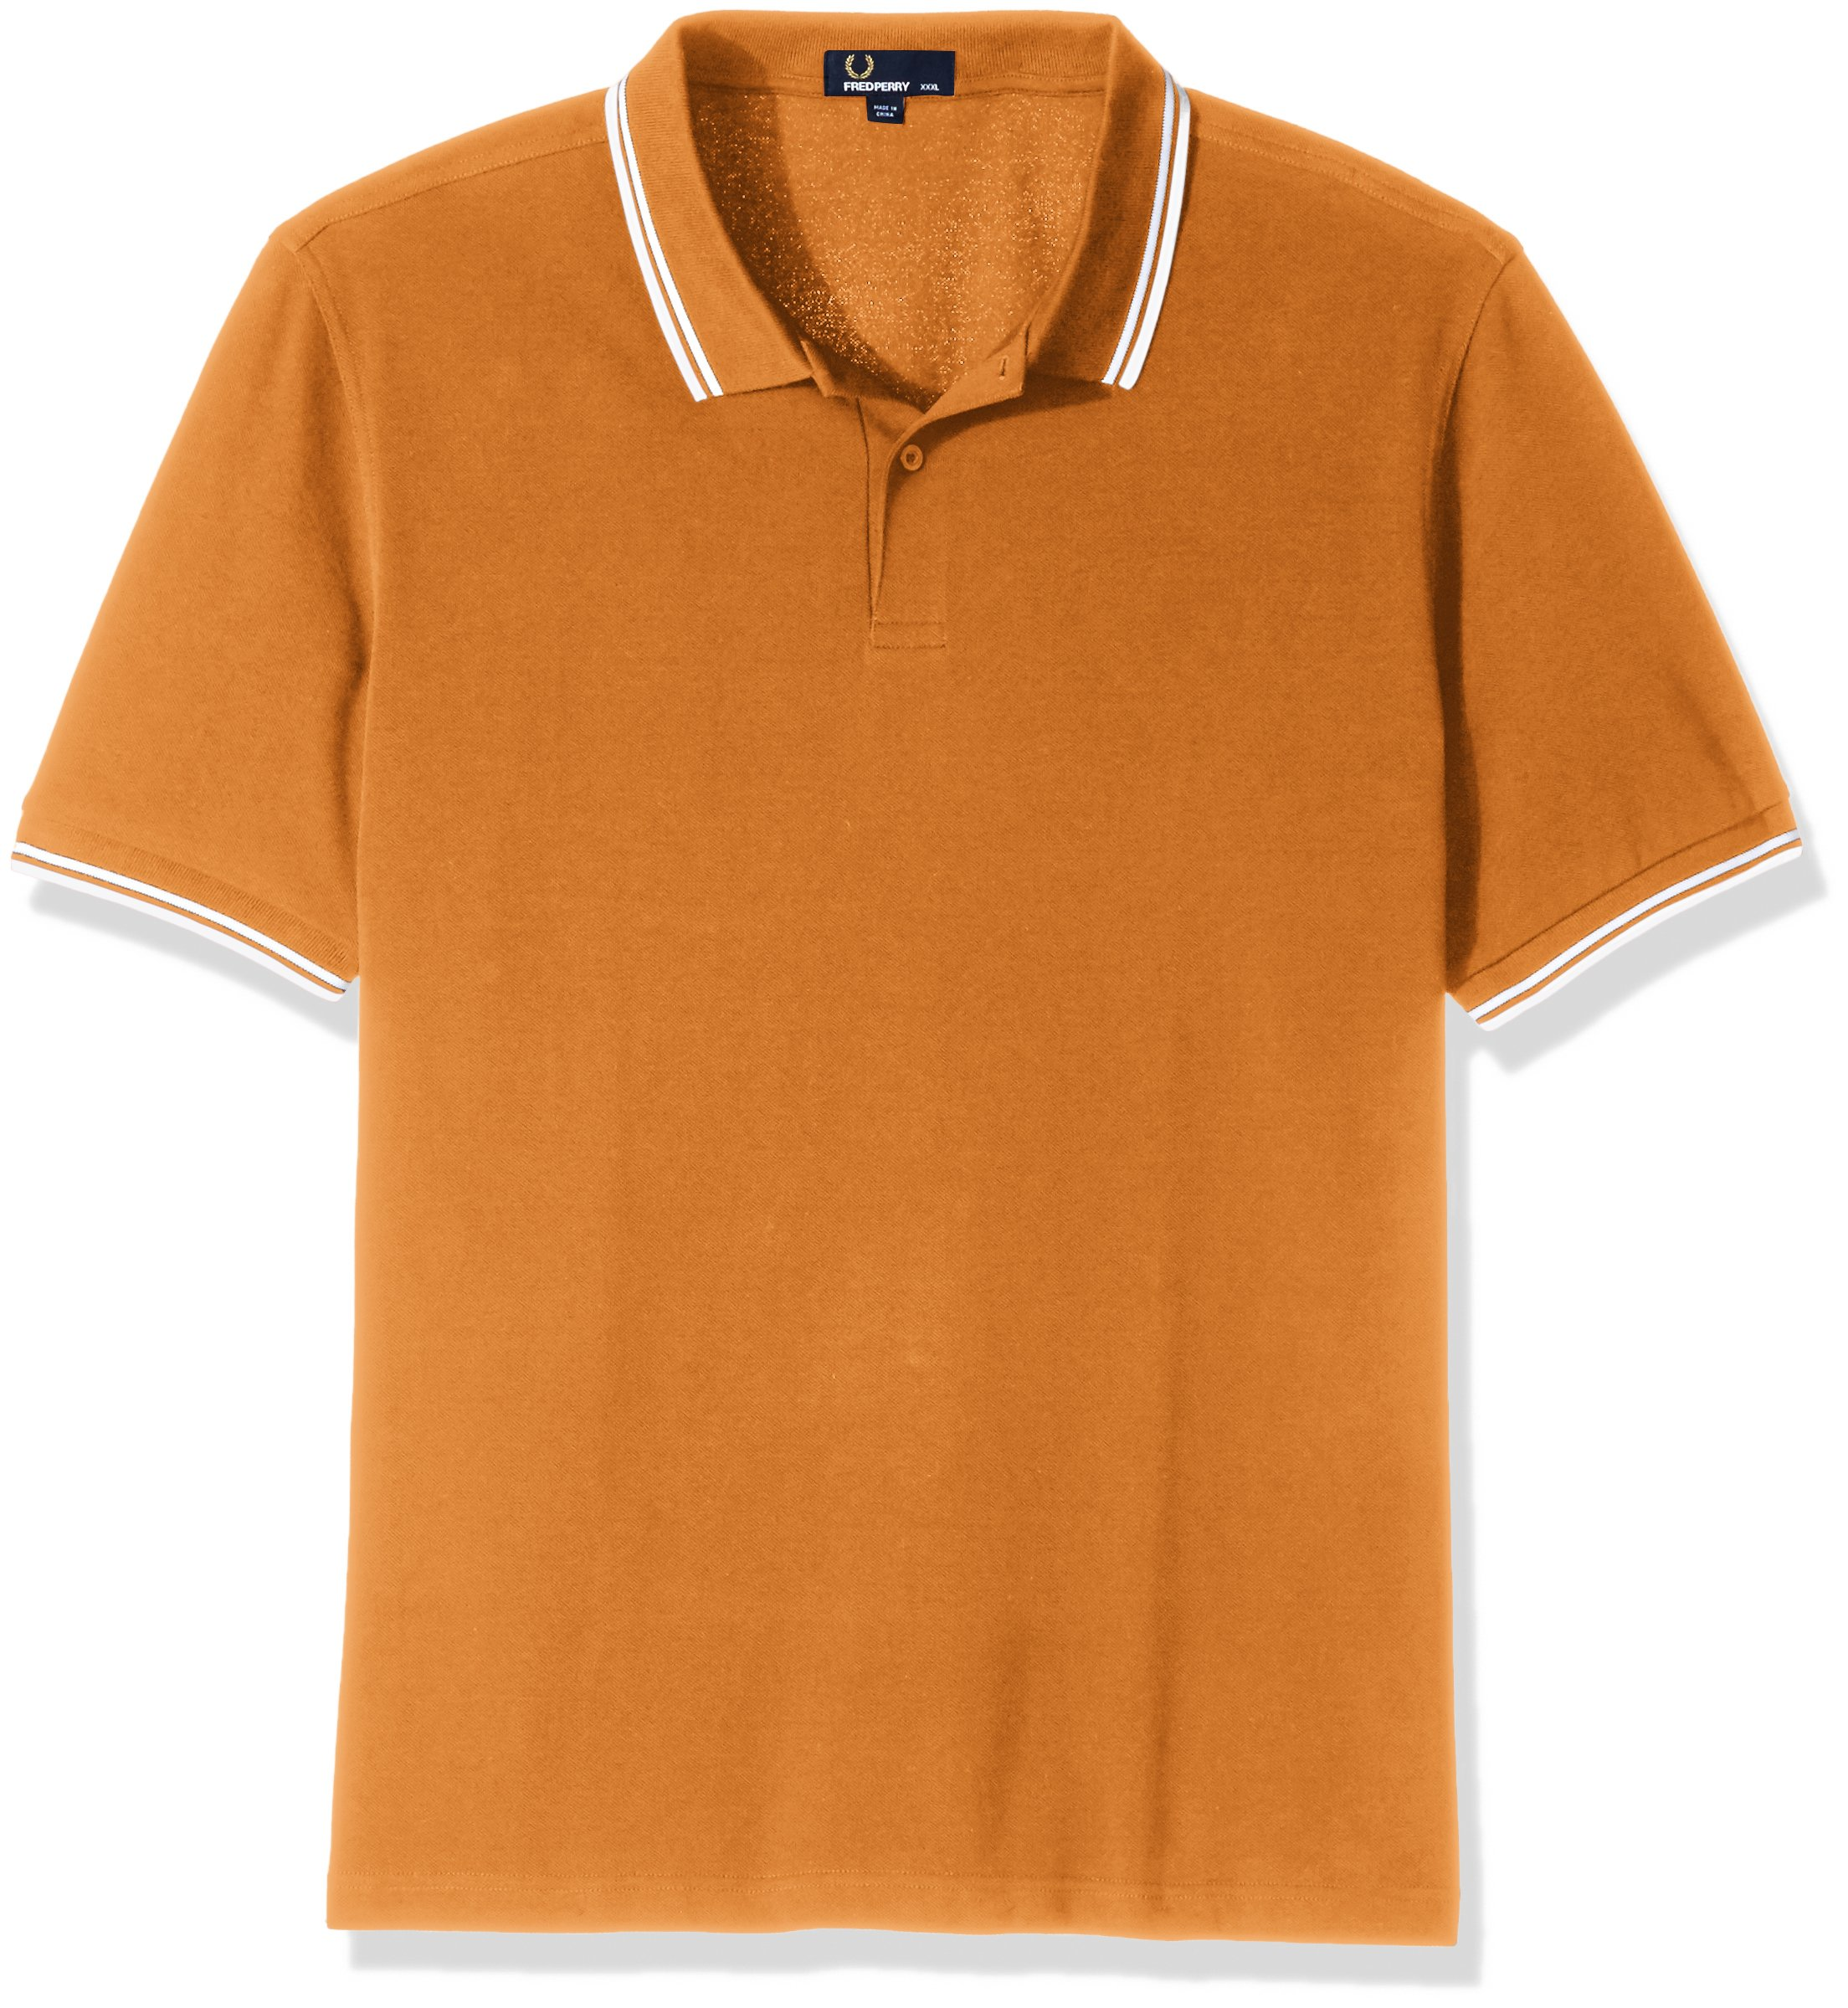 Cheap Fred Perry Polo Shirts Cheap Find Fred Perry Polo Shirts